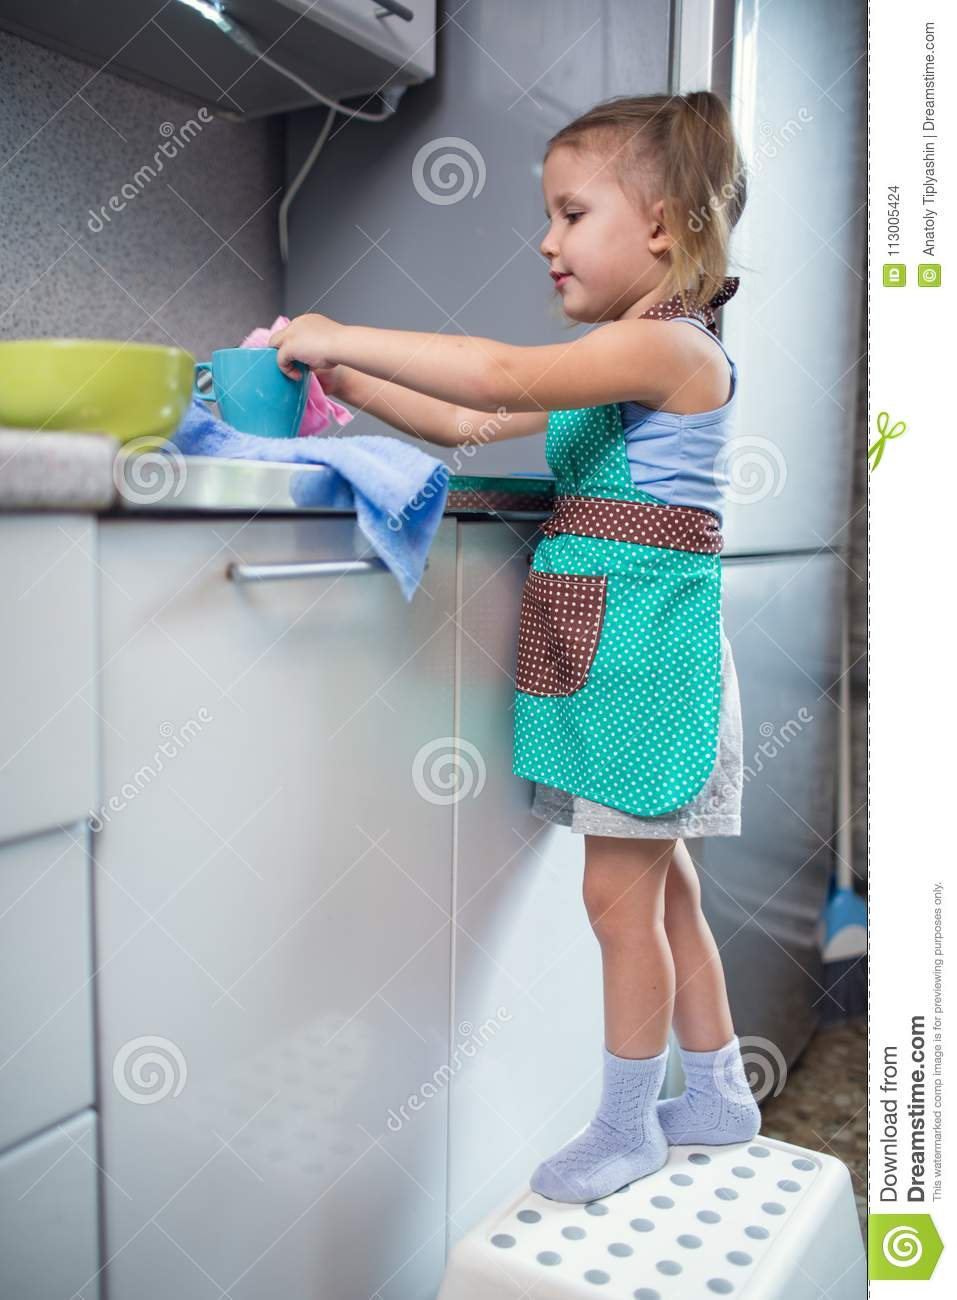 Little Girl Washes Dishes At Home In The Kitchen Stock Photo - Image ...